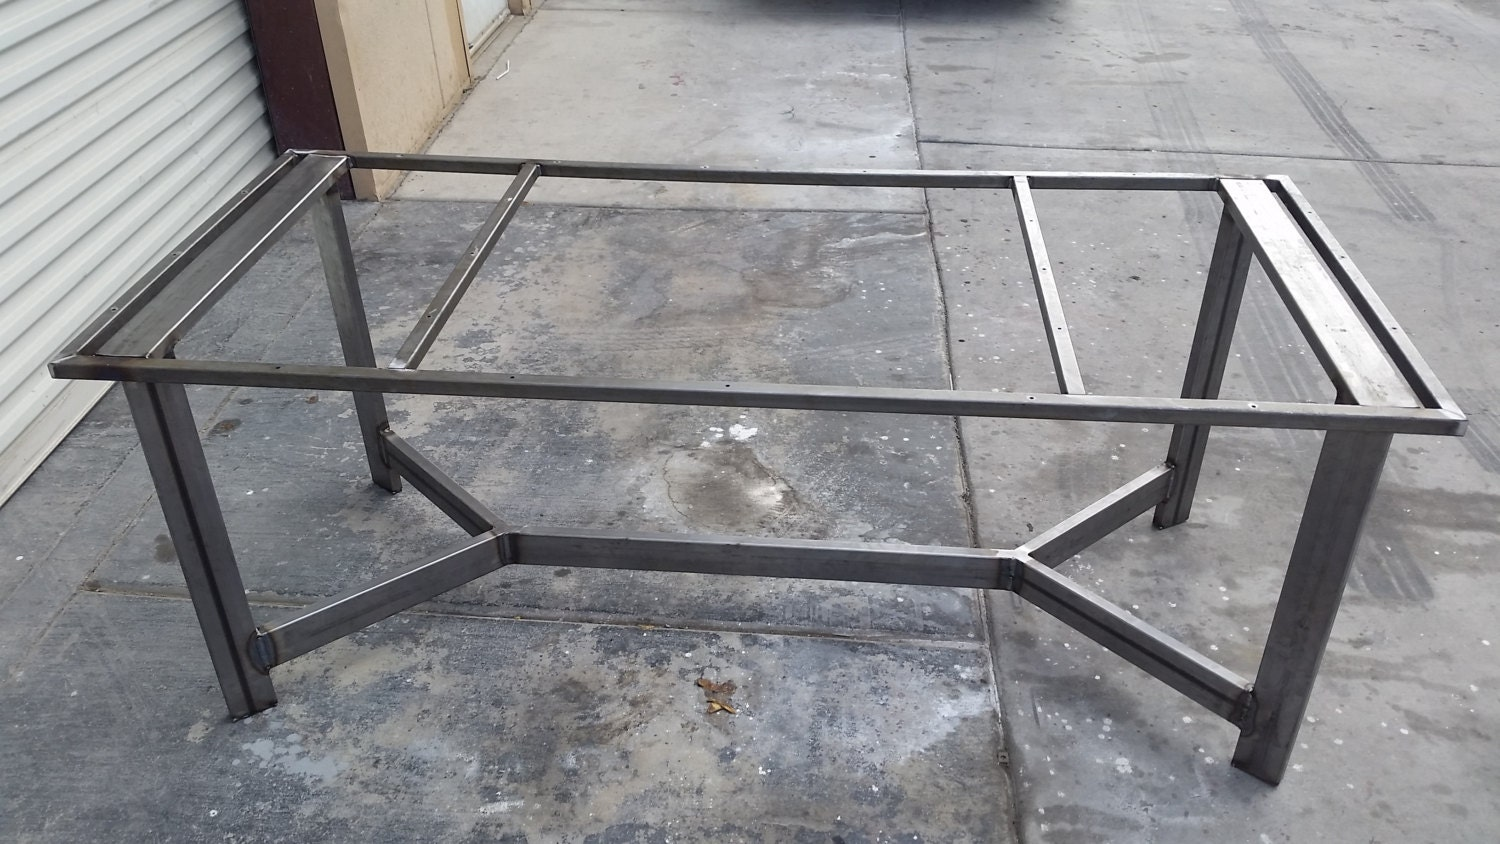 steel table frame welded frame rustic table frame industrial table frame custom table frame steel frame custom furniture rustic furniture